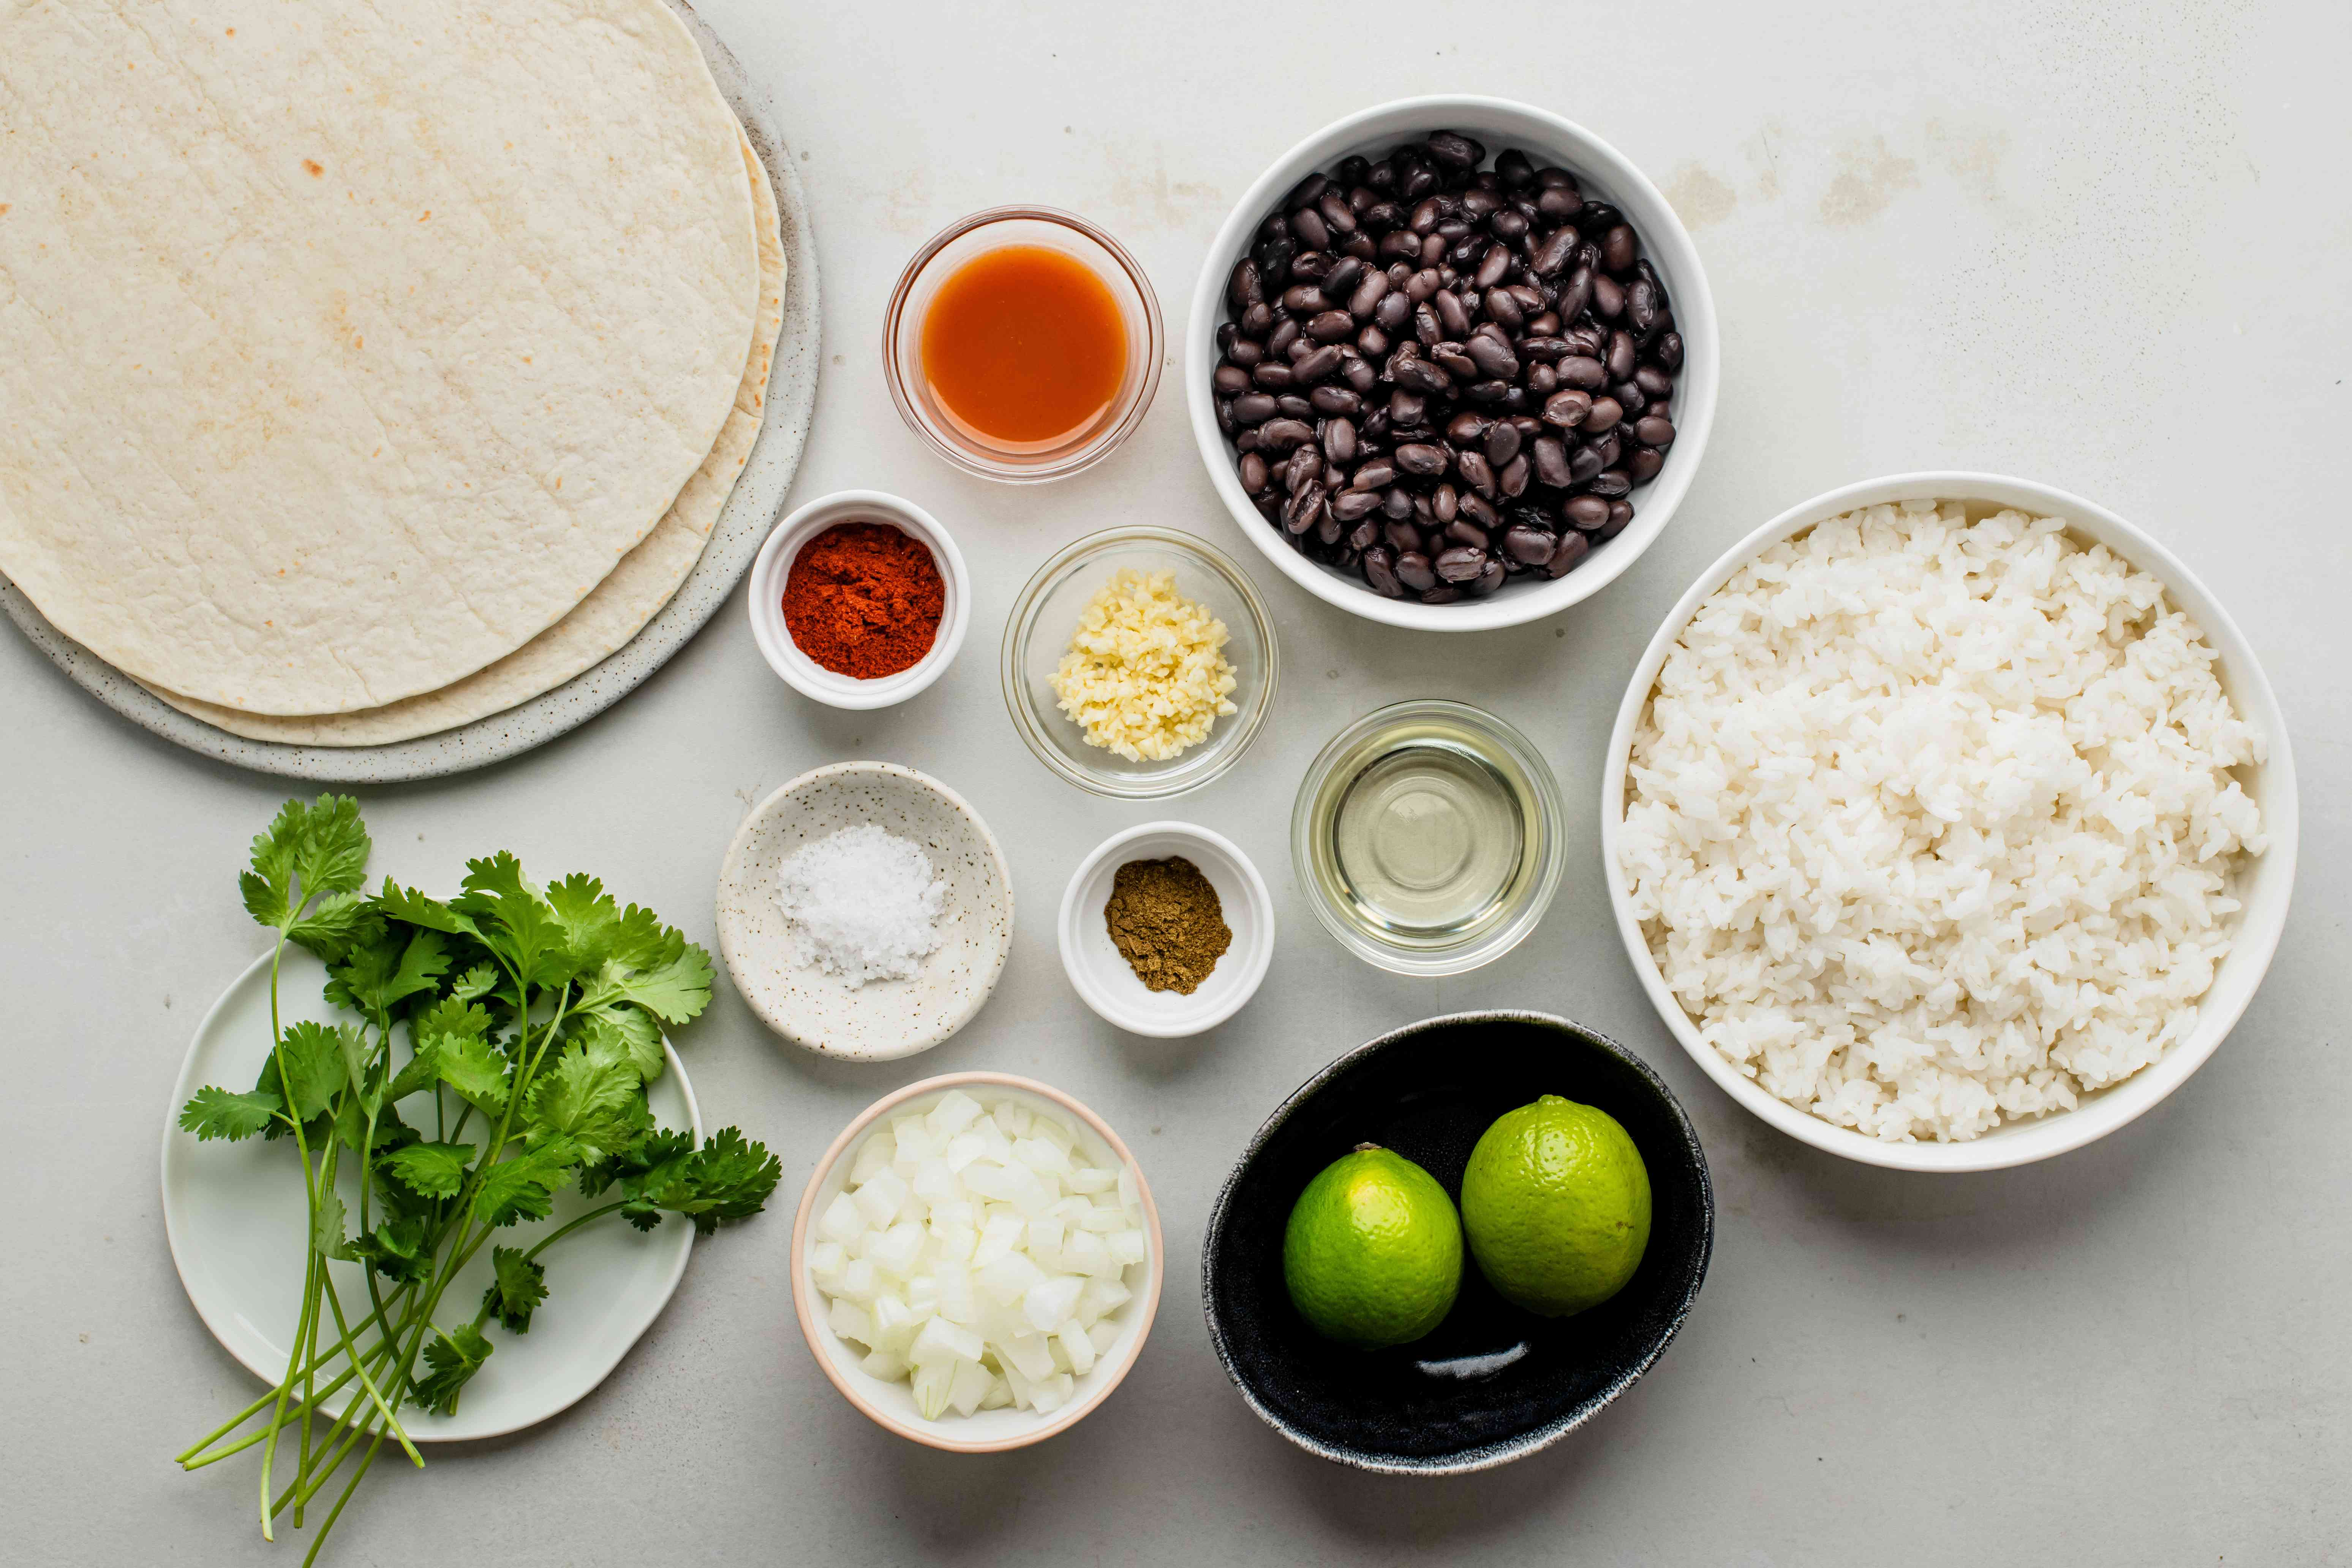 Ingredients for rice and bean burritos